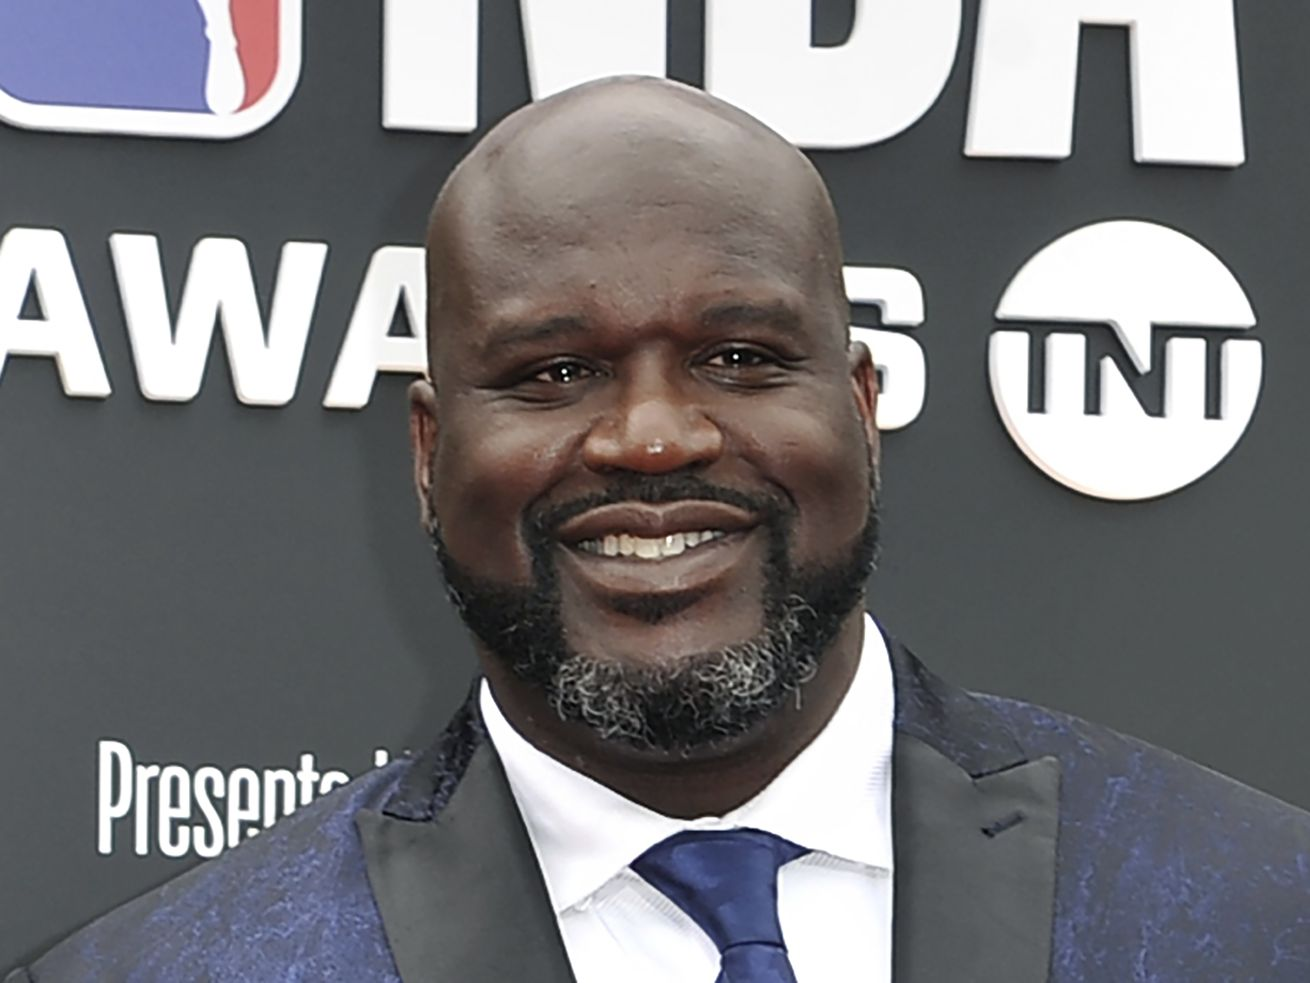 Shaquille O'Neal makes Instagram post showing what 'greatness at the guard position looks like' after Donovan Mitchell drama